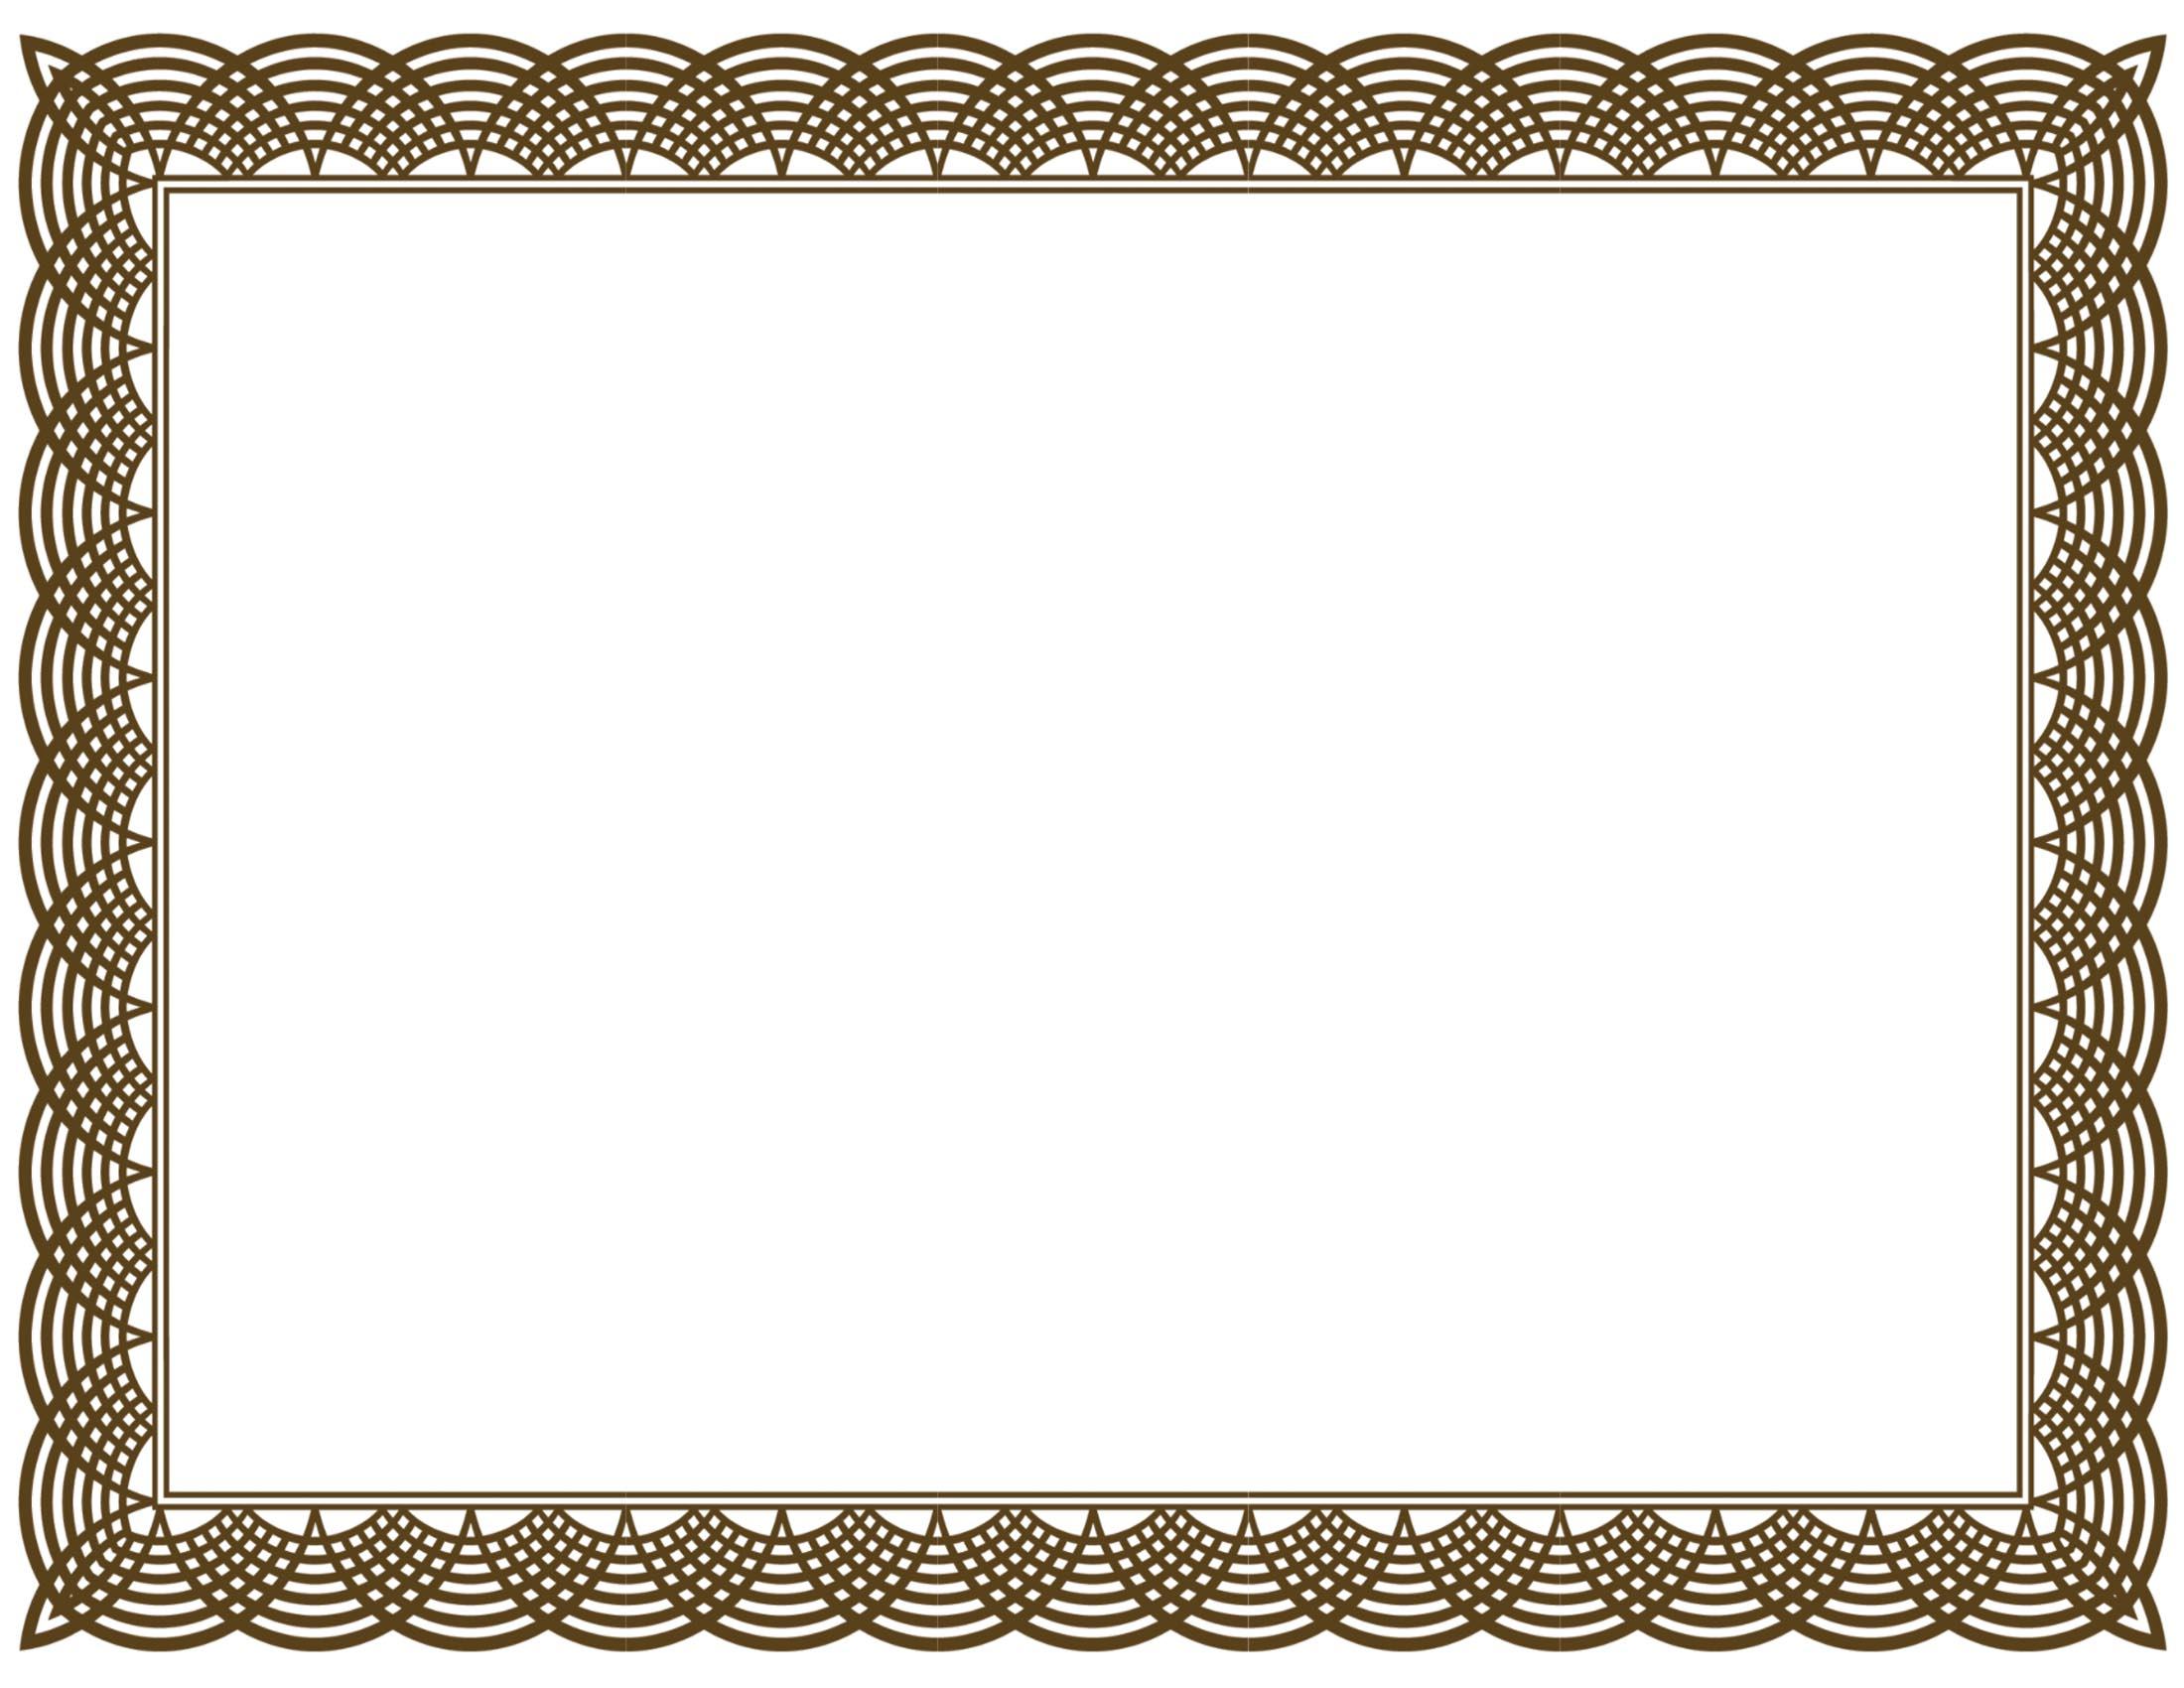 Free borders to download graphic free stock Certificate border clipart free download - ClipartFest graphic free stock